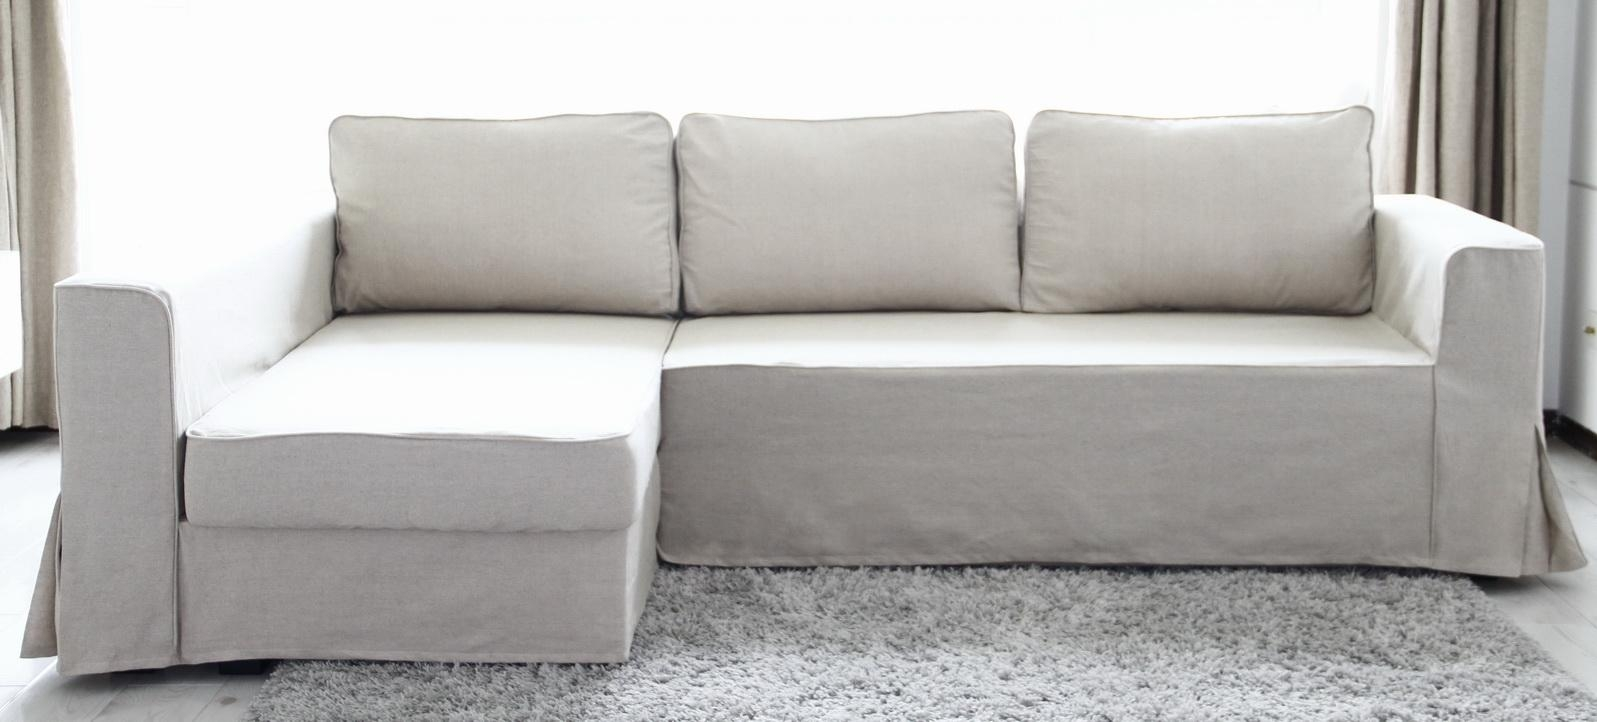 Simple Couch Covers With Chaise Target Loveseat Slipcover V In Design In Chaise Sofa Covers (View 2 of 20)